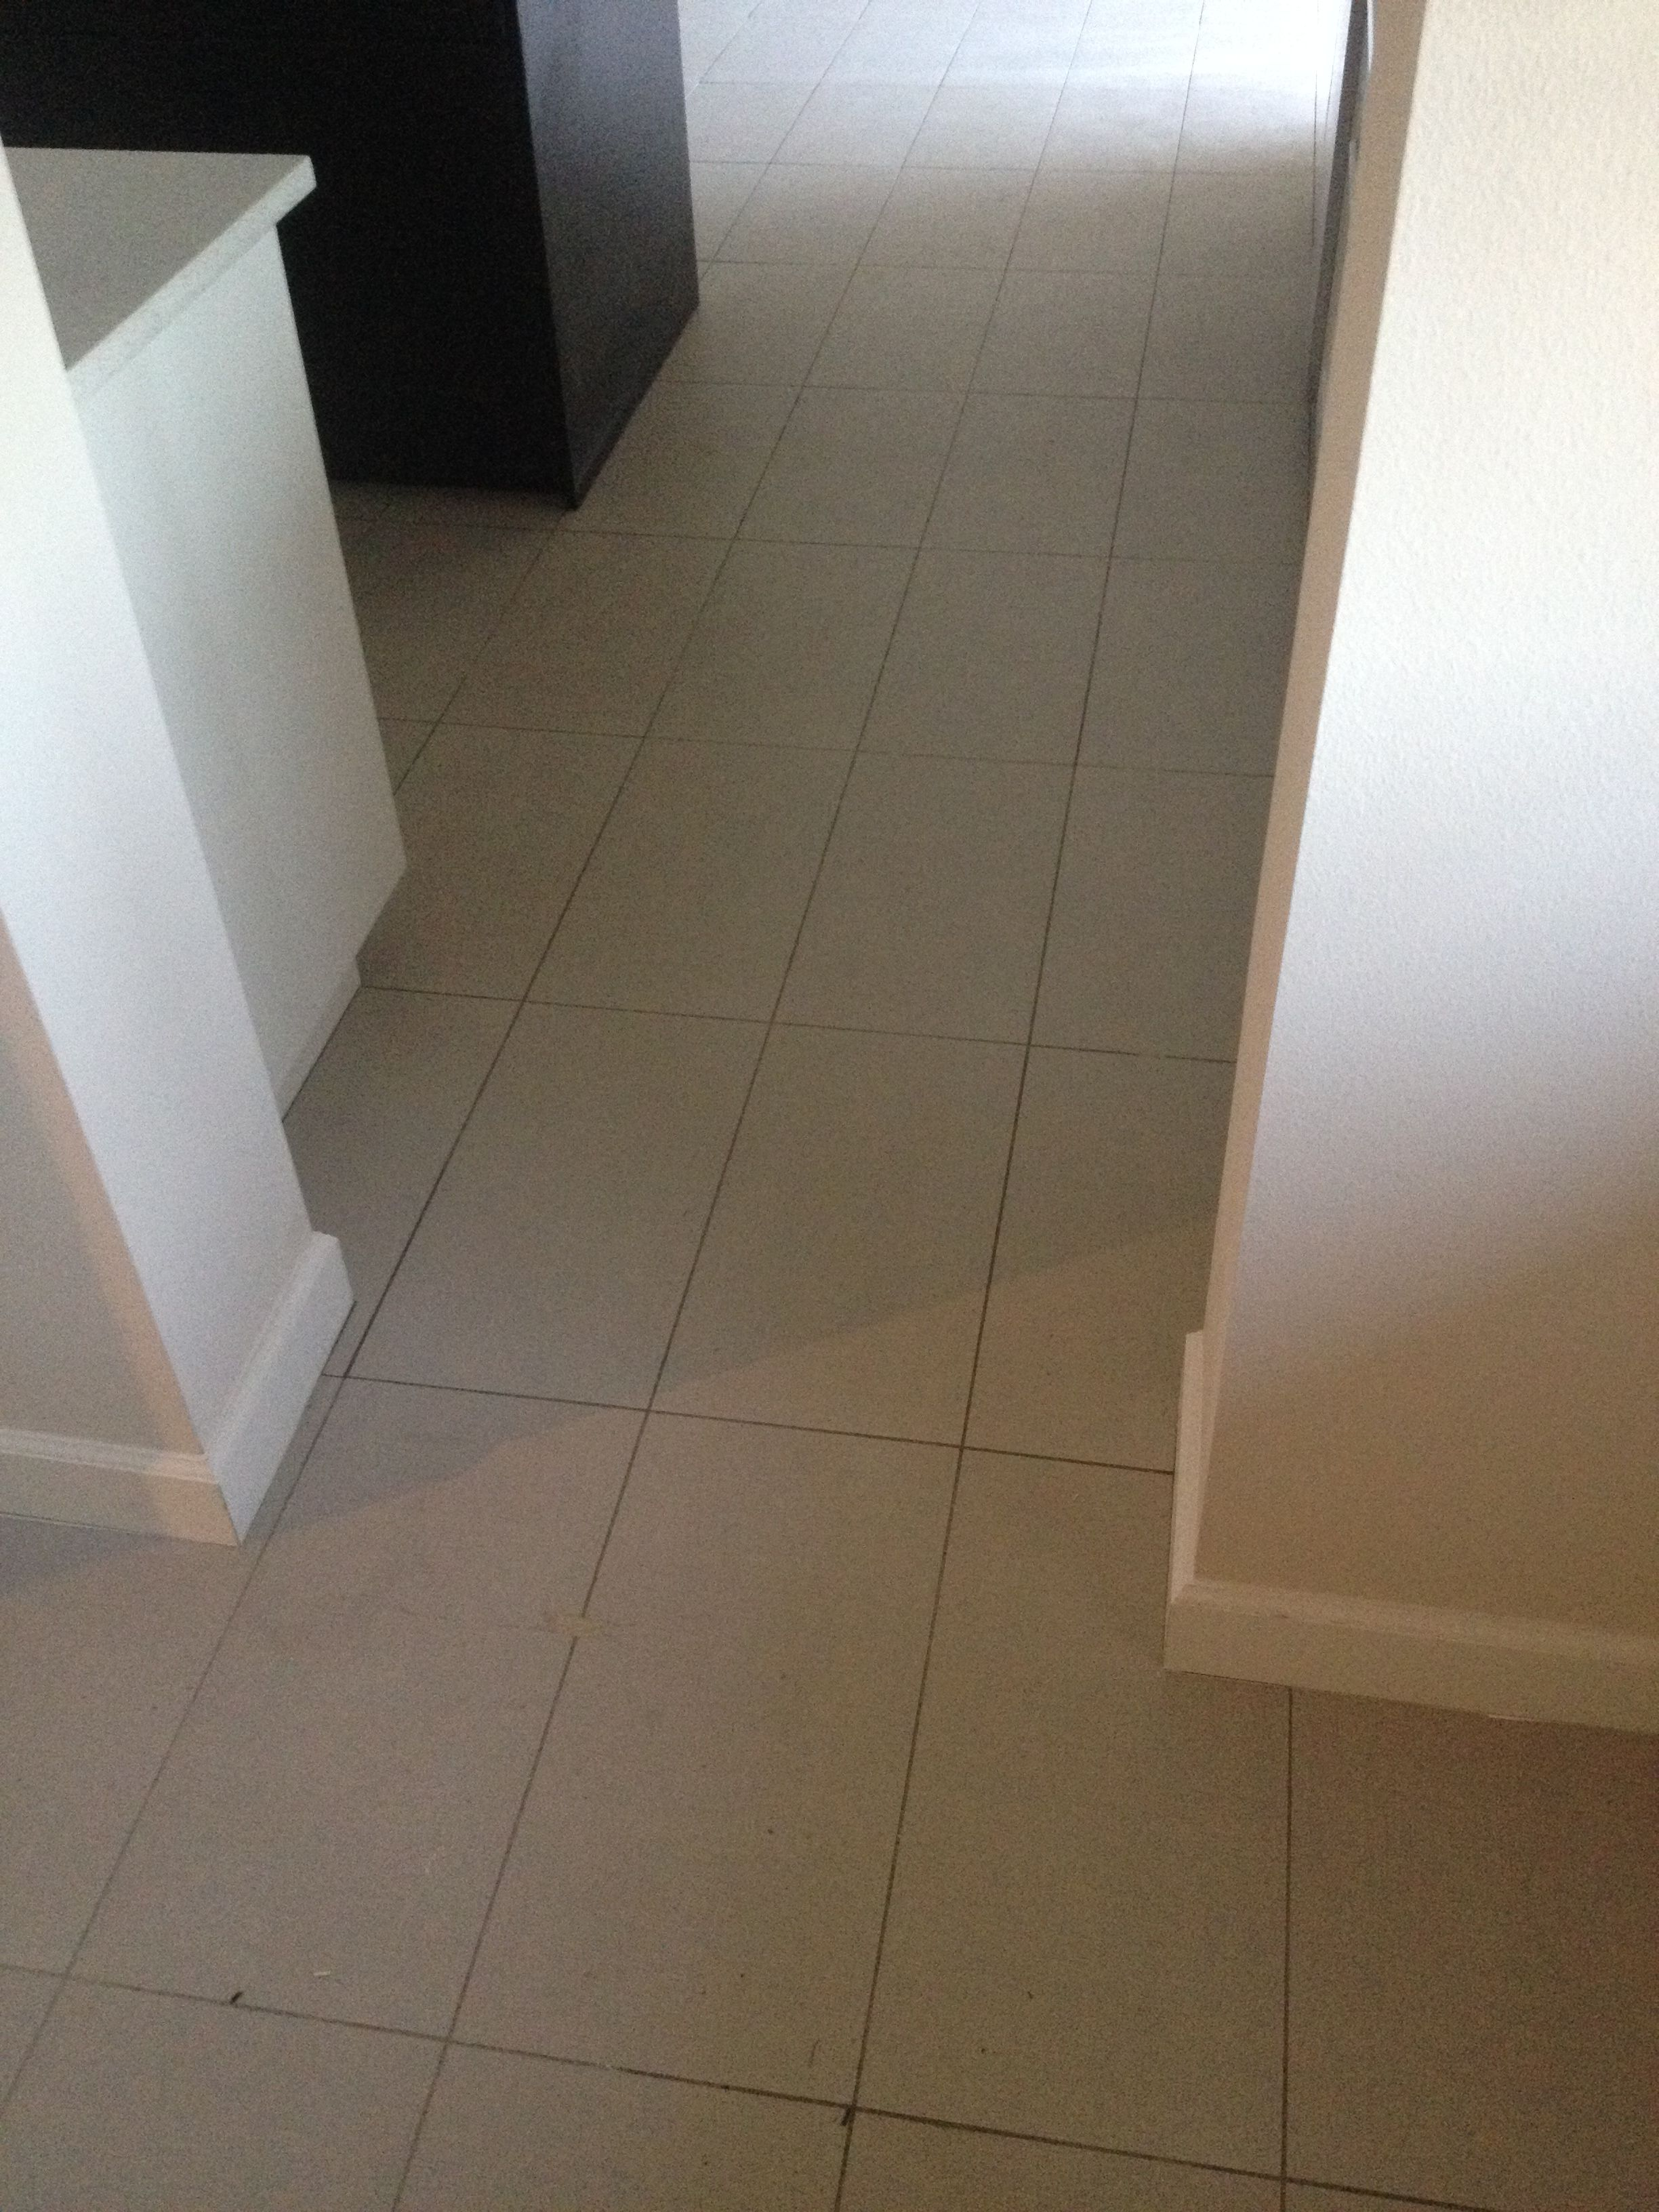 12 X 24 Porcelain Tile 12x24 Tile Tiled Hallway Tile Floor